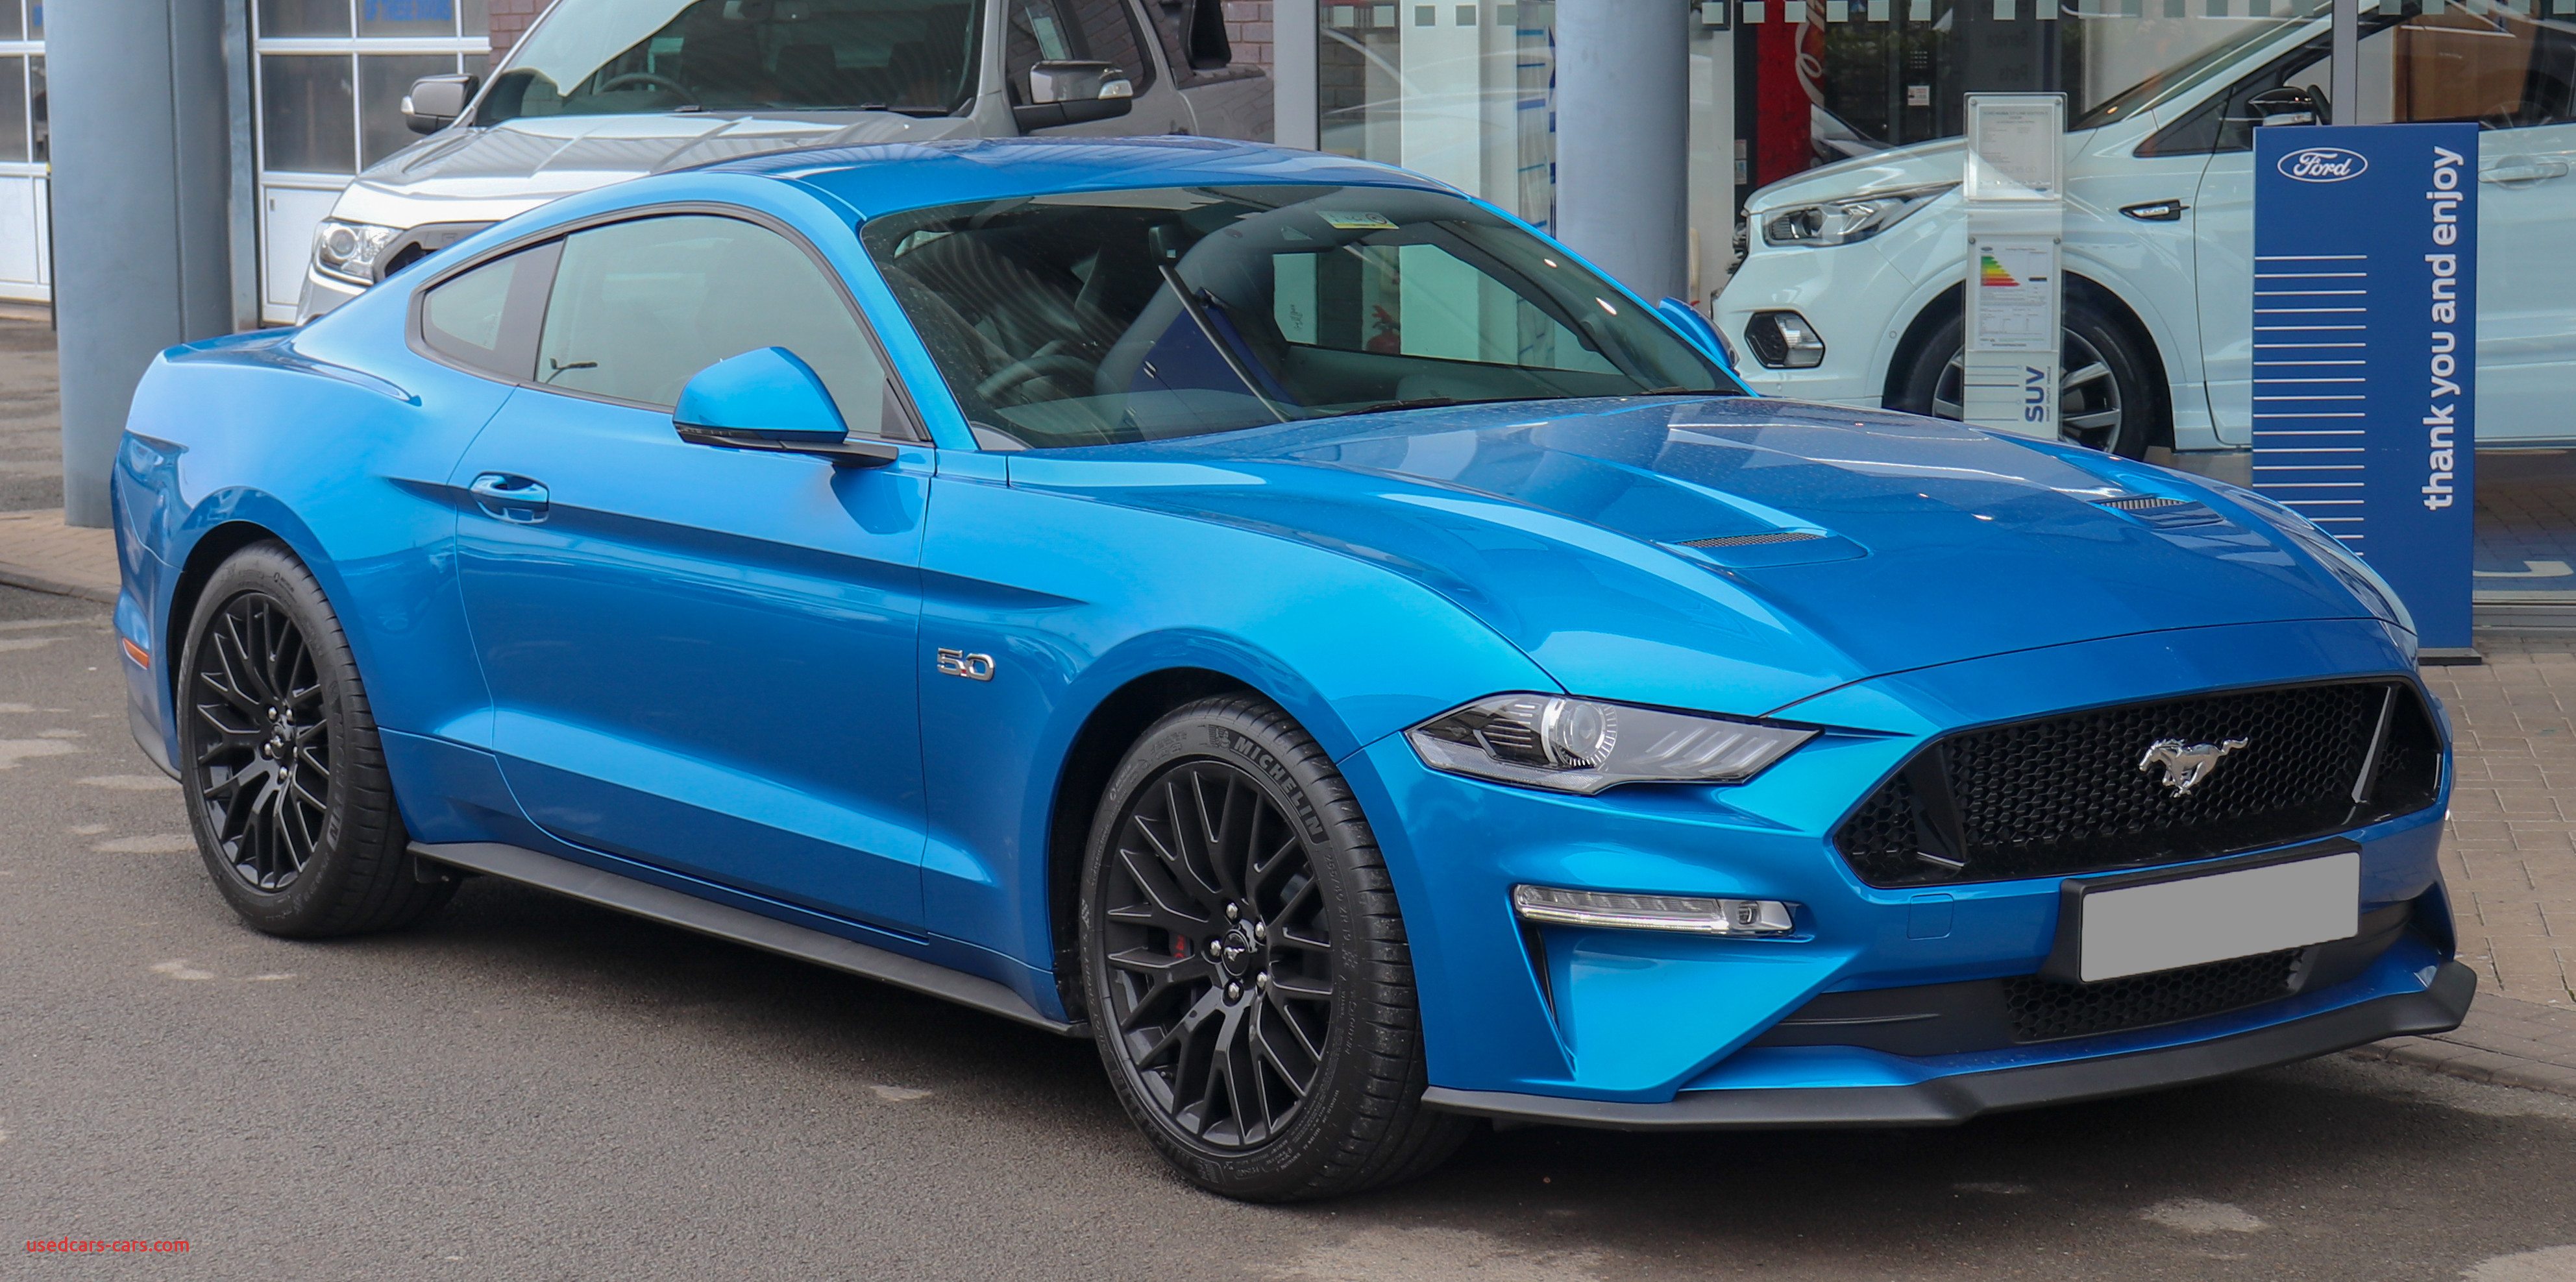 2019 Ford Mustang GT 5 0 facelift